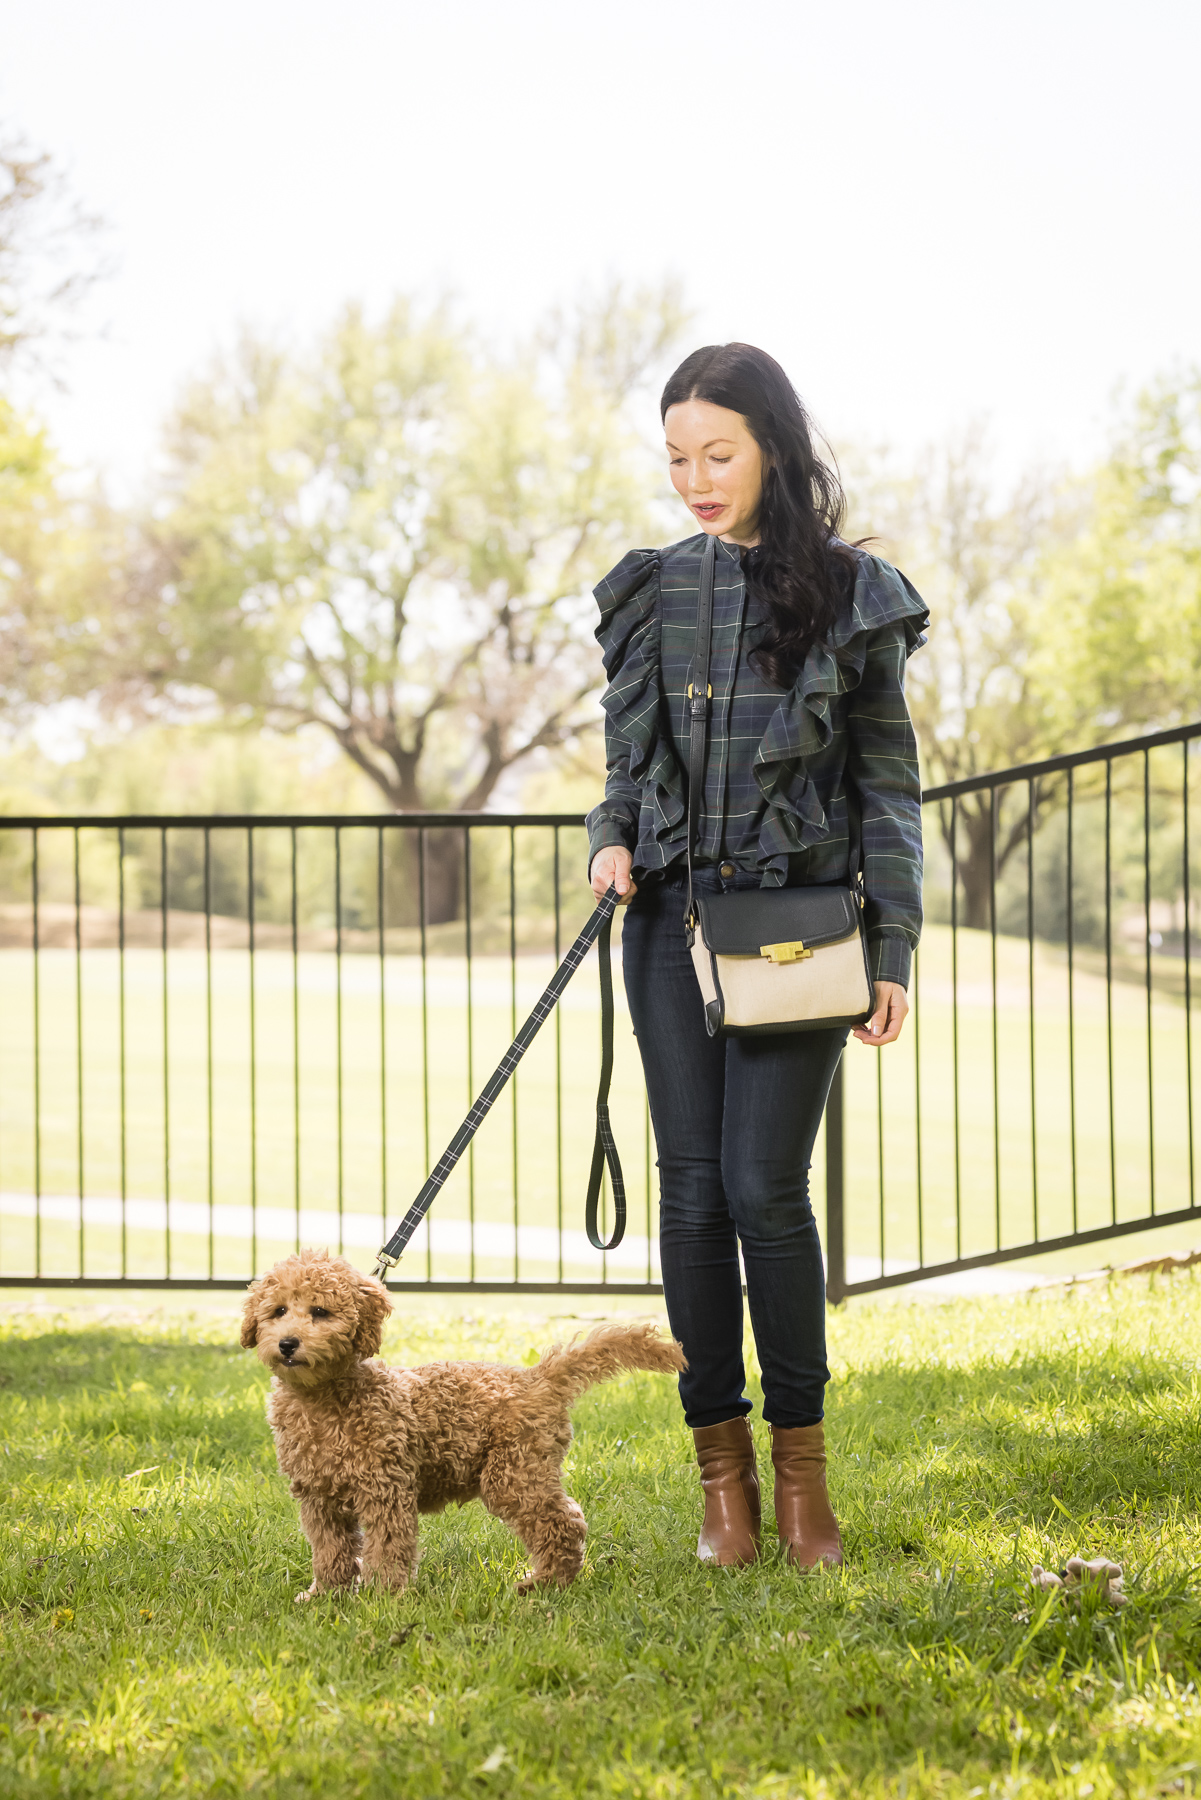 GoldenDoodle Puppy, Matching Mom and Dog Outfits, Tartan Blouse, Tartan Bowtie and Leash, Meet My New Puppy, New Puppy Cuteness, Pretty Little Shoppers Blog, Dallas Lifestyle Blog, #GoldenDoodlePuppy #MeetMyPup |Charlie Cupcake by popular Dallas lifestyle blog, Pretty Little Shoppers: image of a woman wearing a plaid ruffle top and jeans and standing next to her goldendoodle puppy.